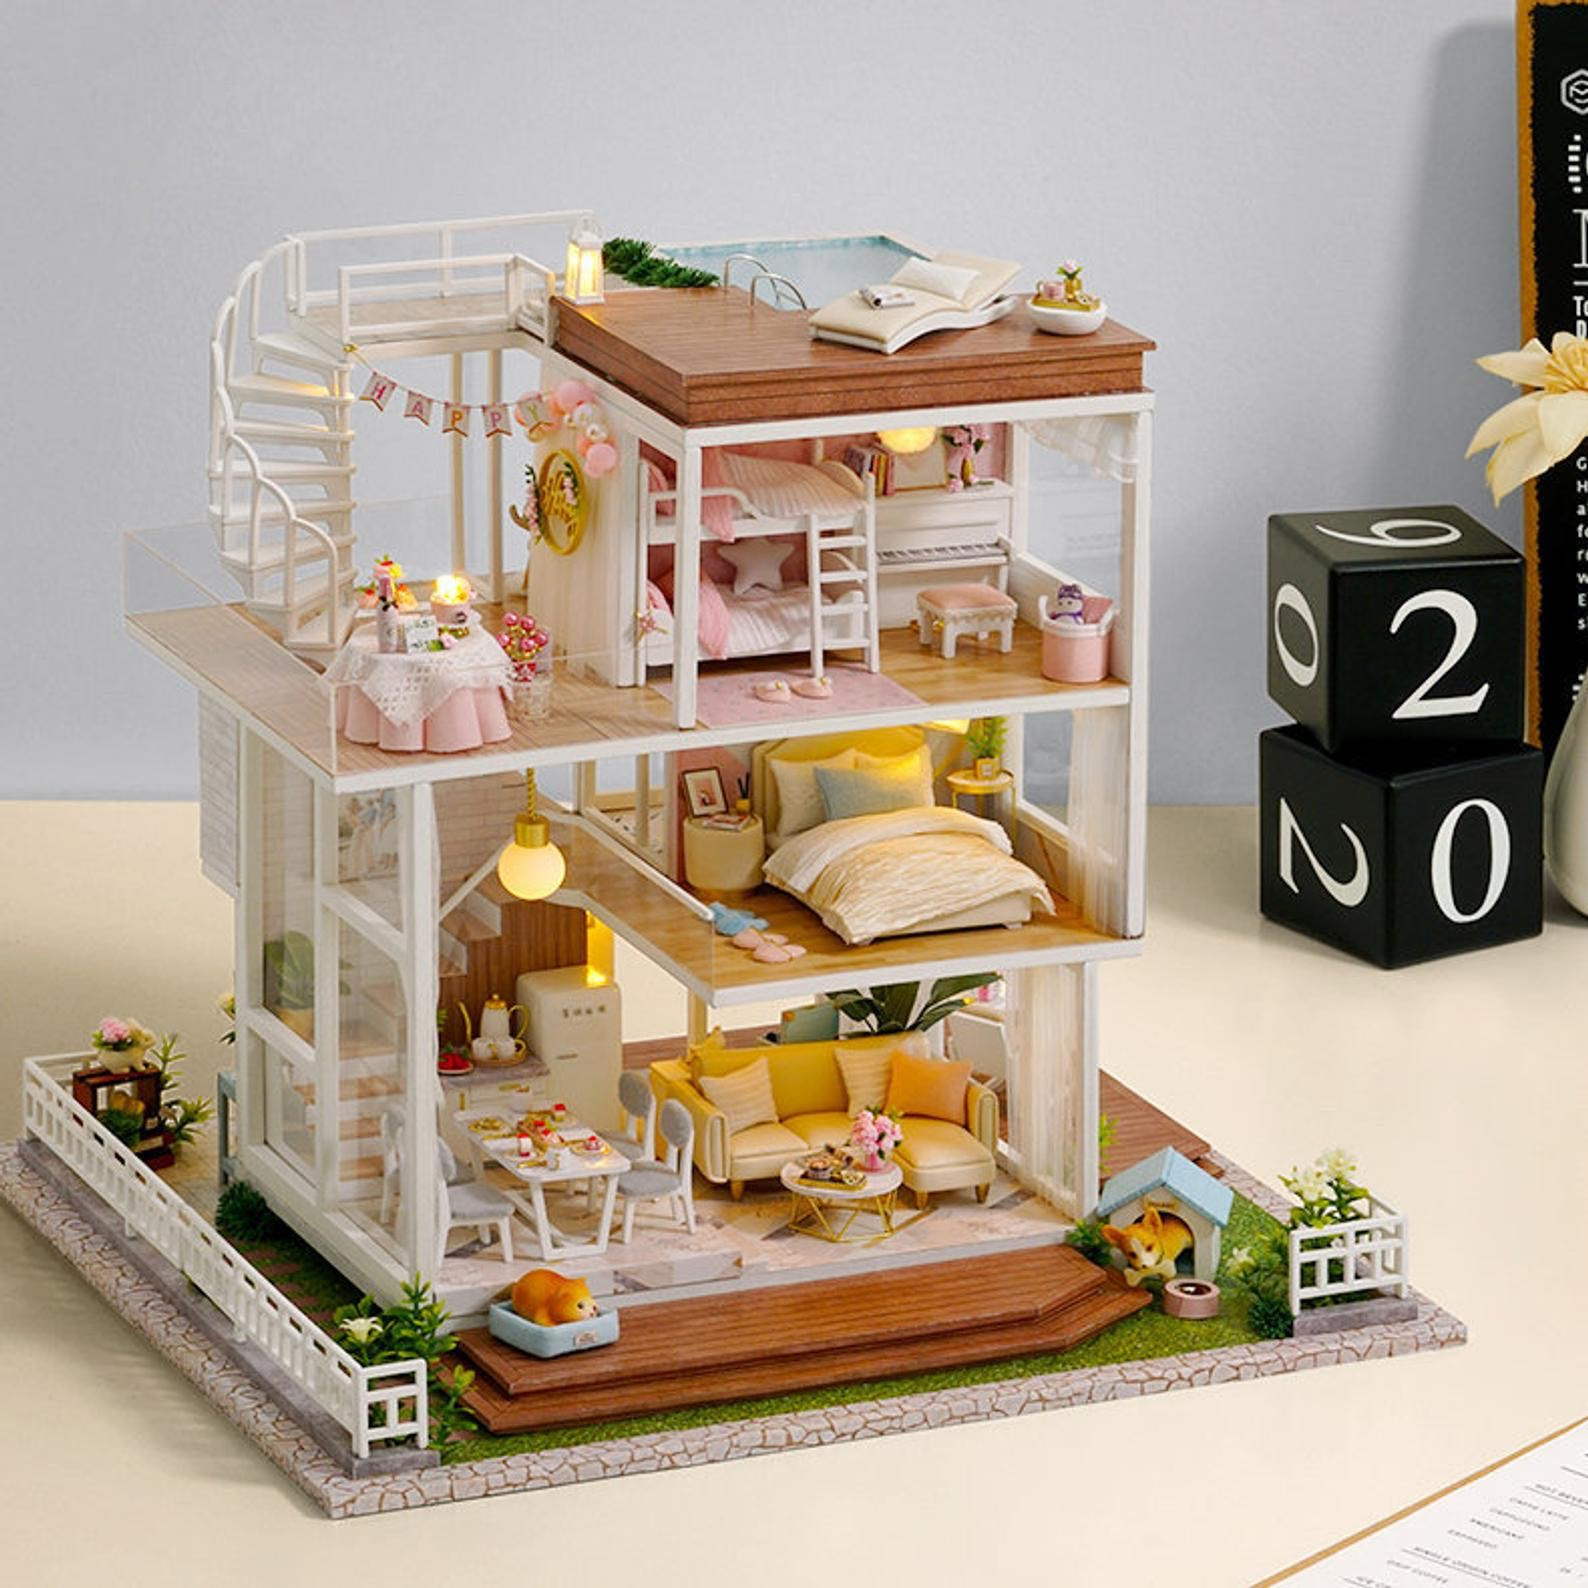 Gift Idea - A DIY Dollhouse Kit